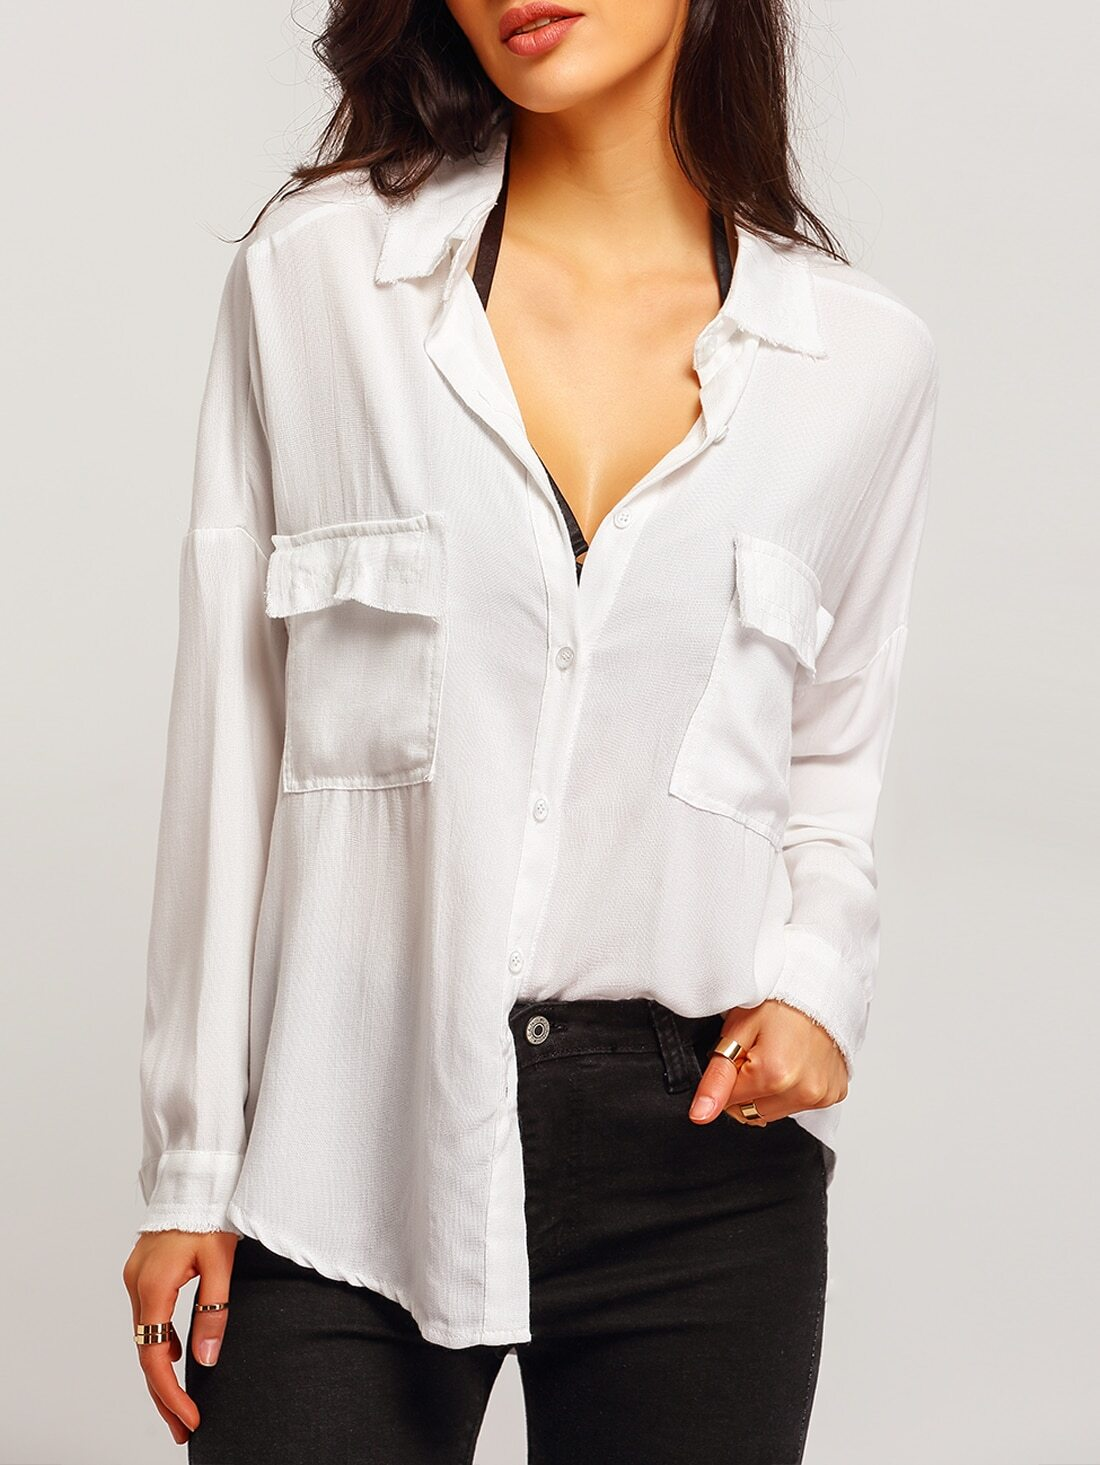 Shirts & Blouses. From breezy, boho blouses to oversized, athletic-inspired T-shirts, GoJane carries all of the latest trends in tops, blouses and shirts.